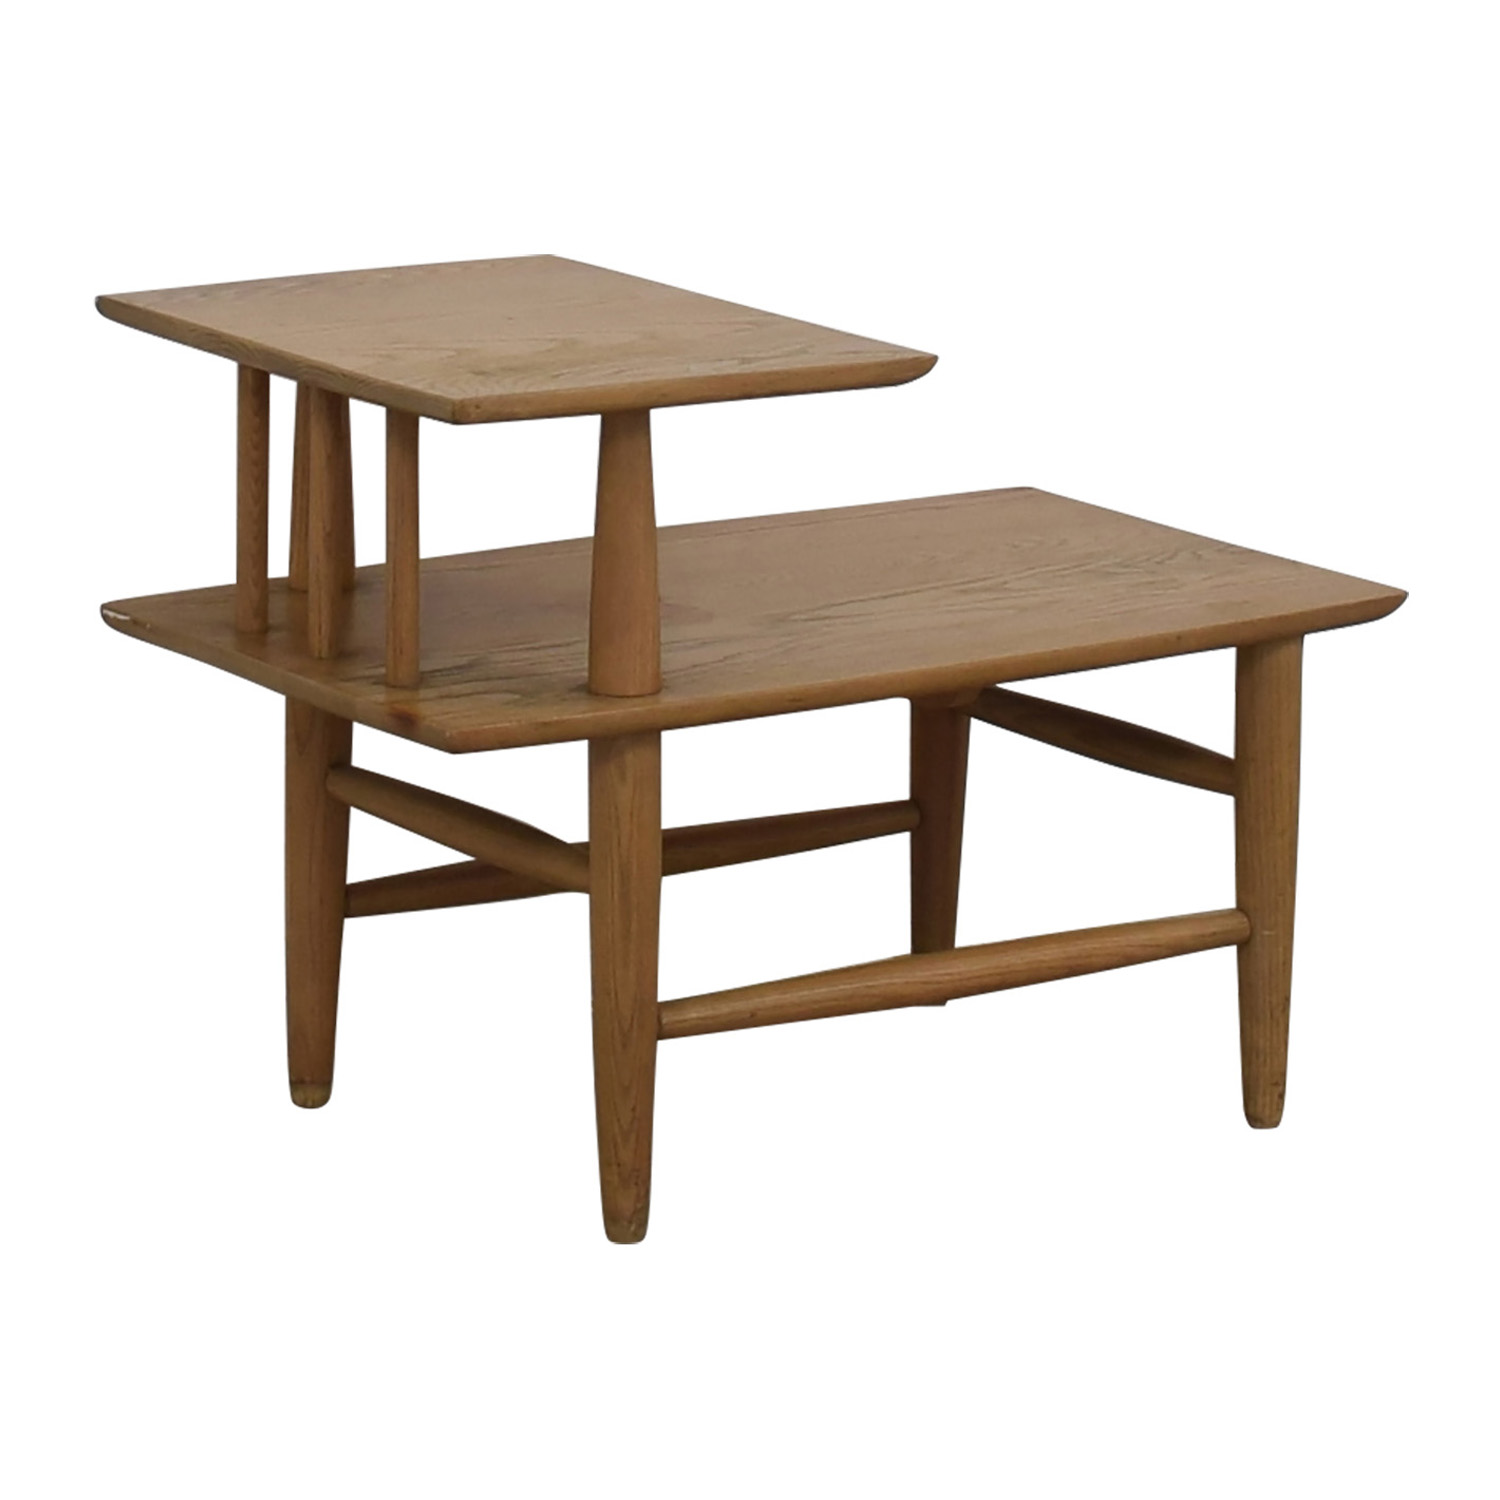 Natural Wood Two-Level Coffee table used